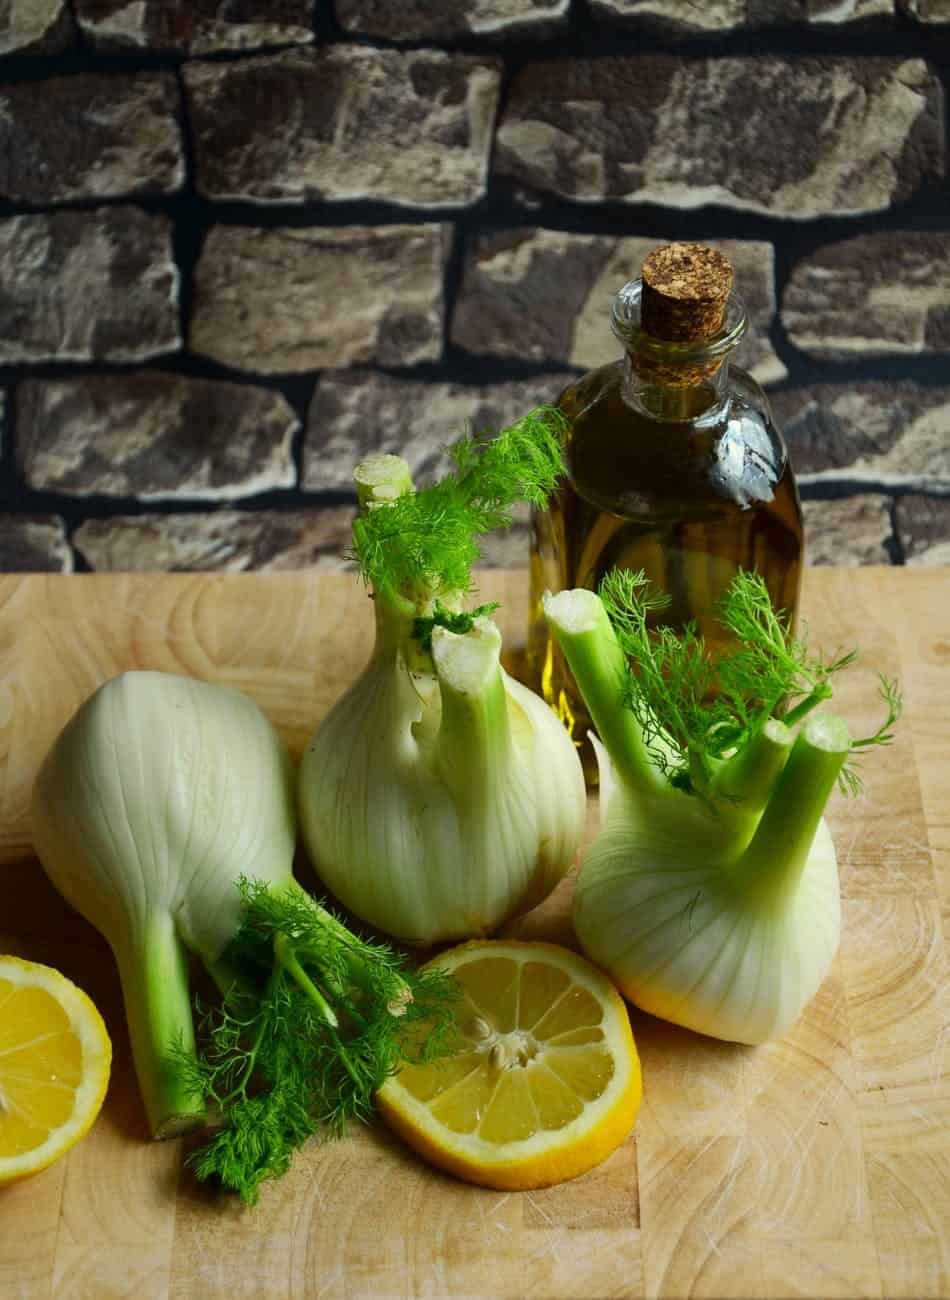 white onion with sliced lemon on beige table